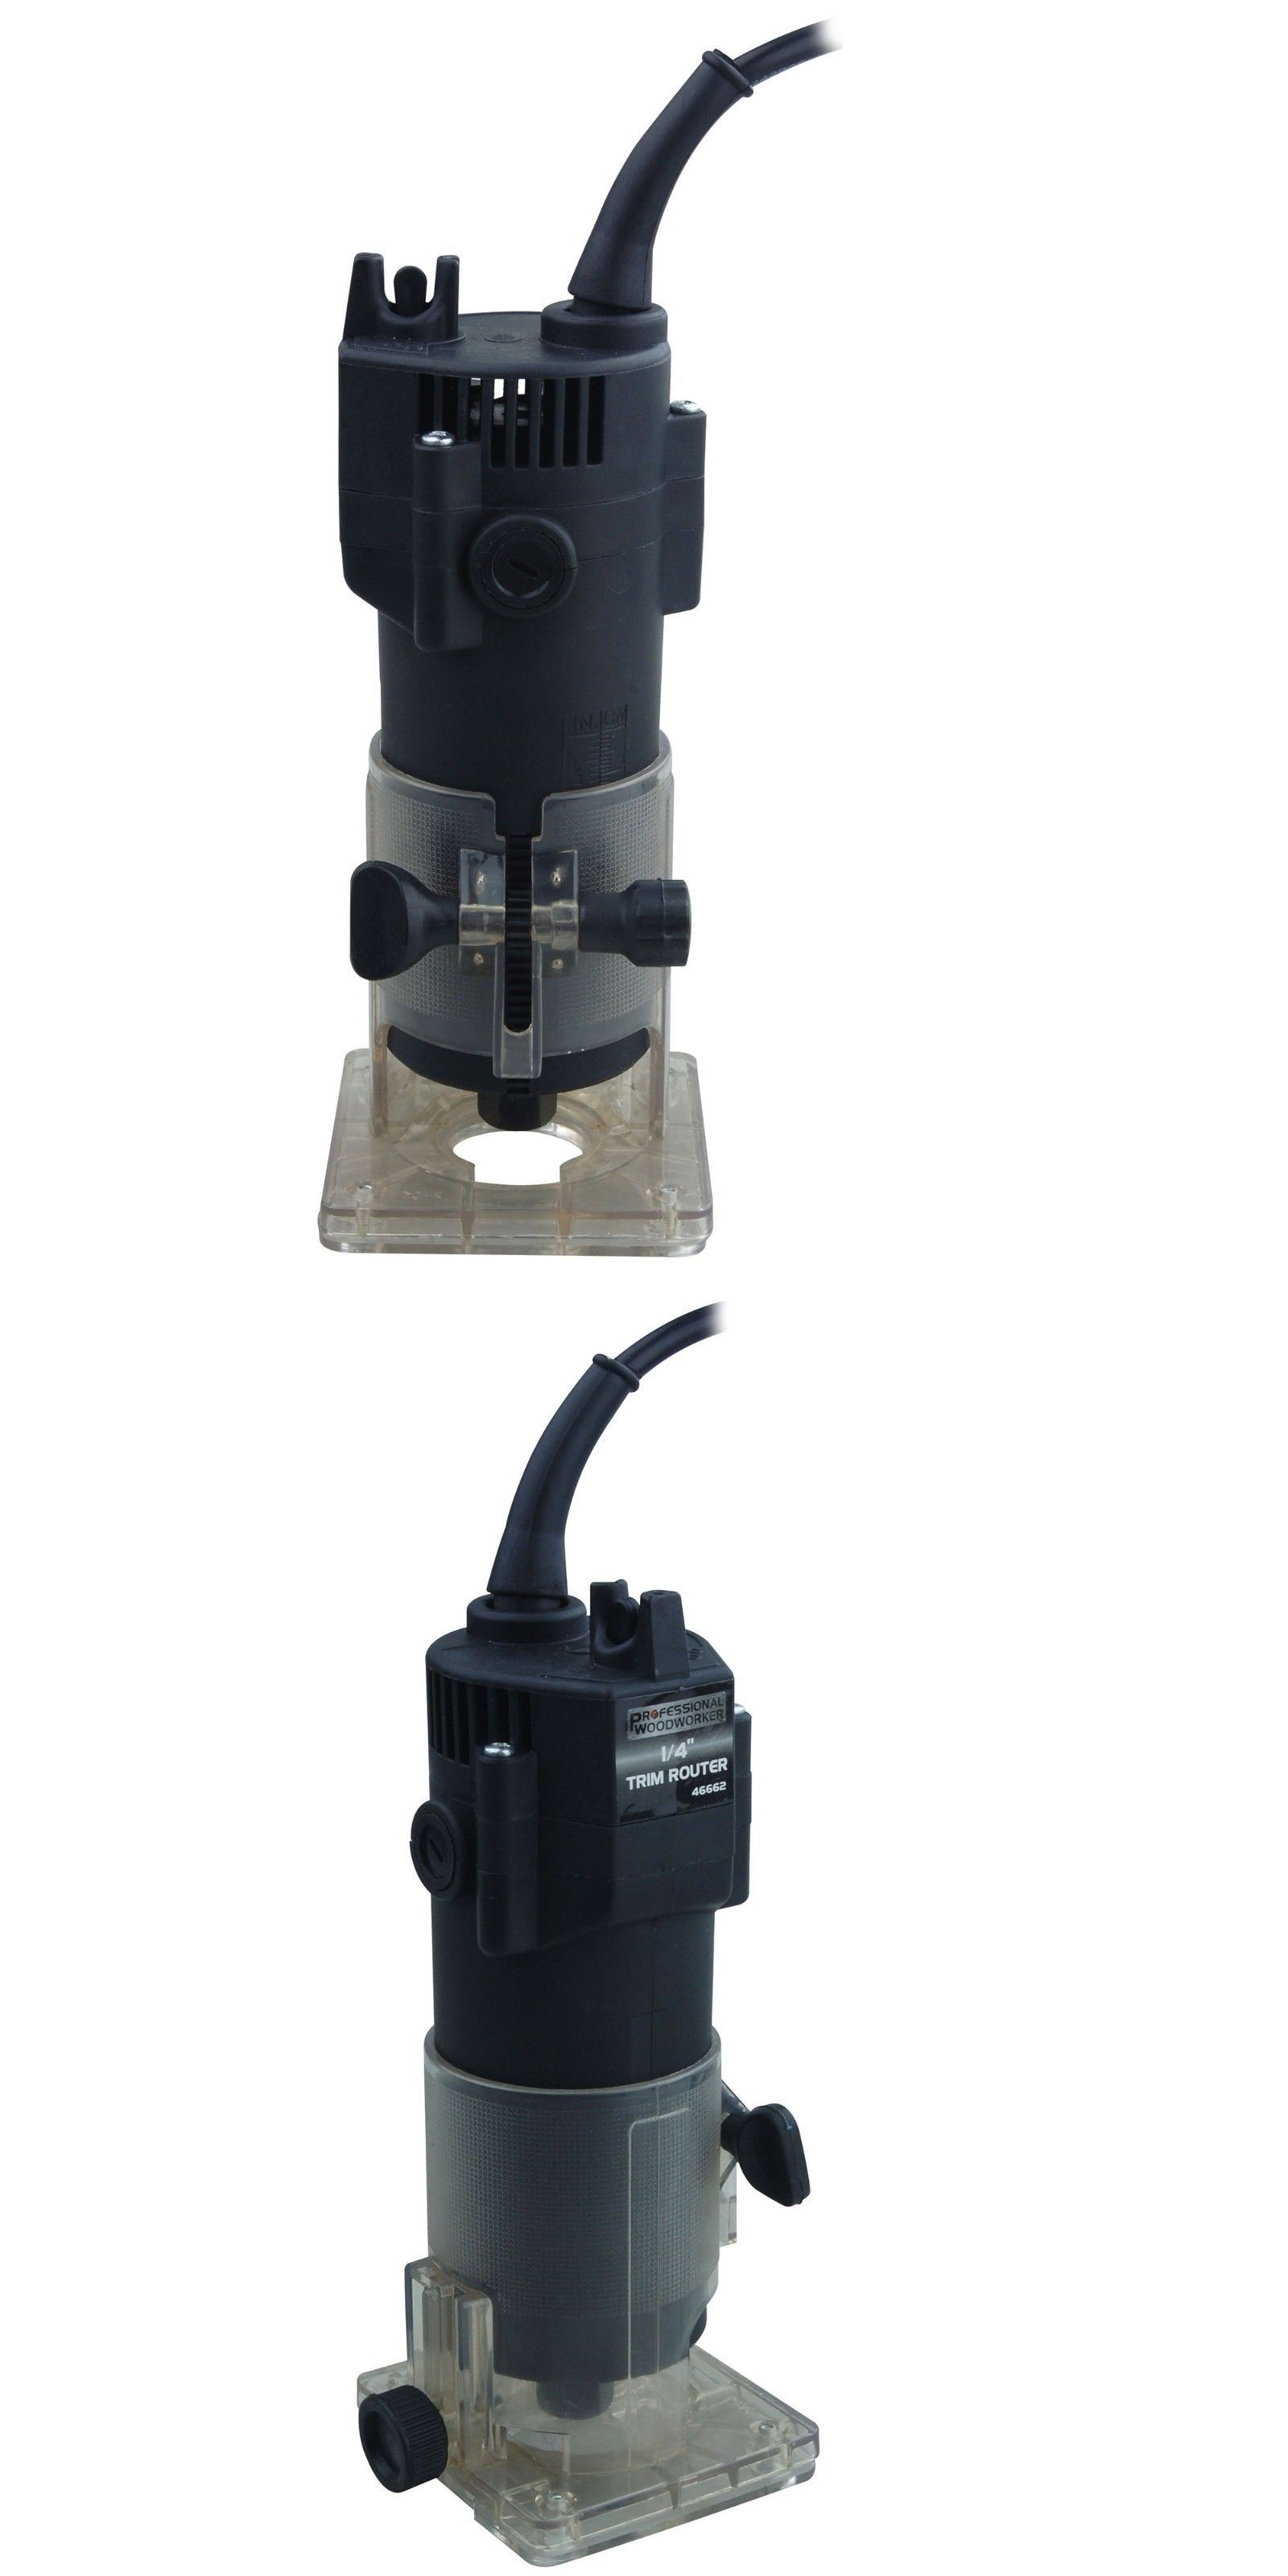 Details about Professional Woodworker Electric Trim Router ...